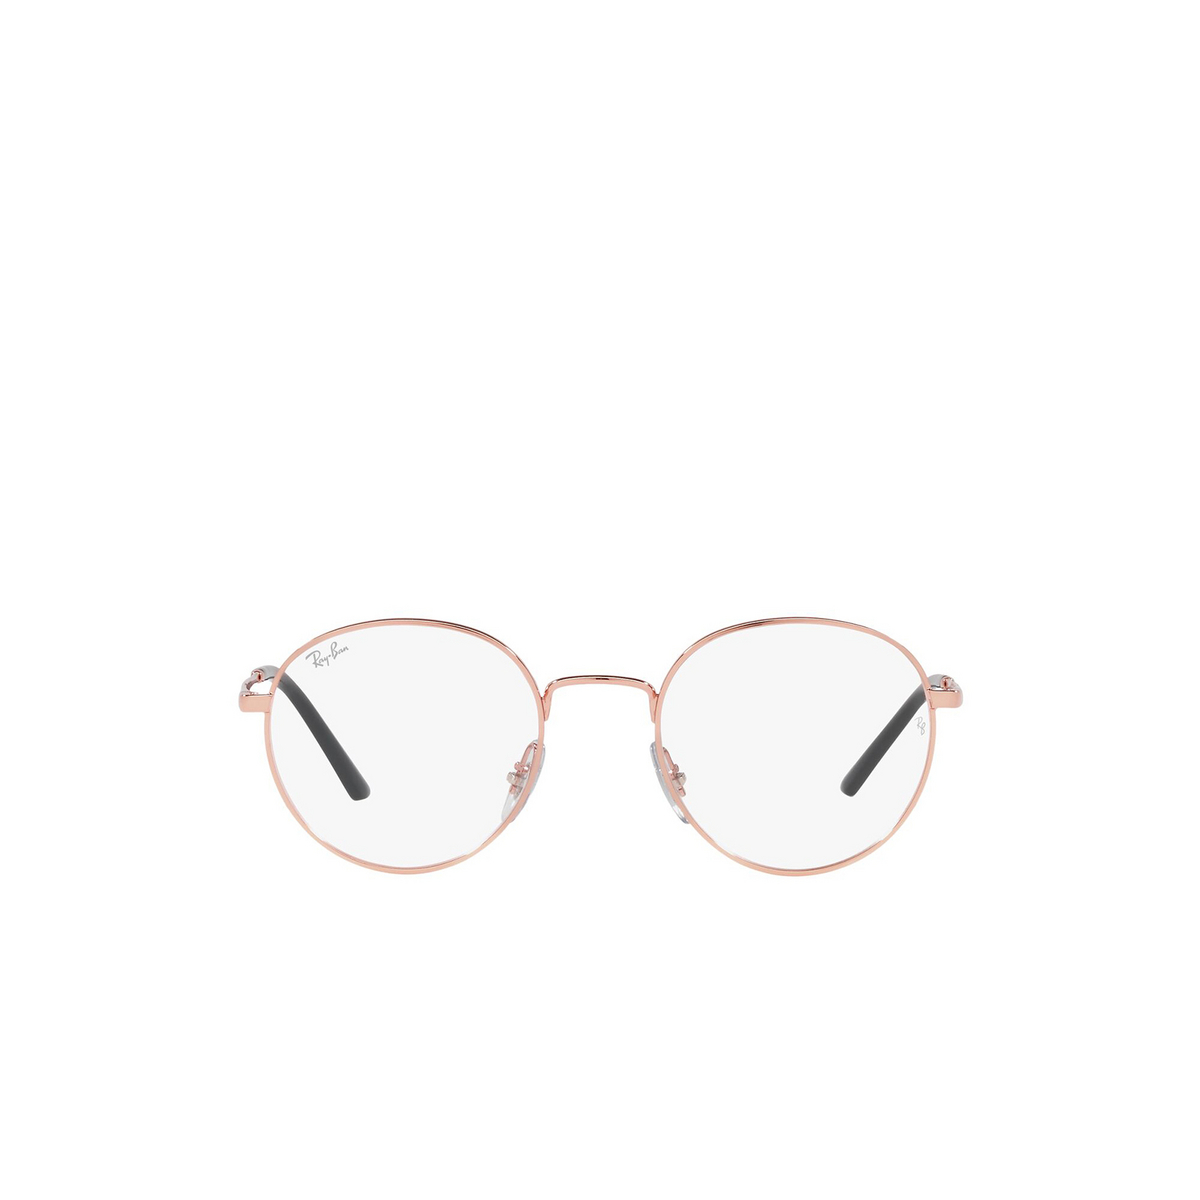 Ray-Ban® Round Eyeglasses: RX3681V color Rose Gold 3094 - front view.